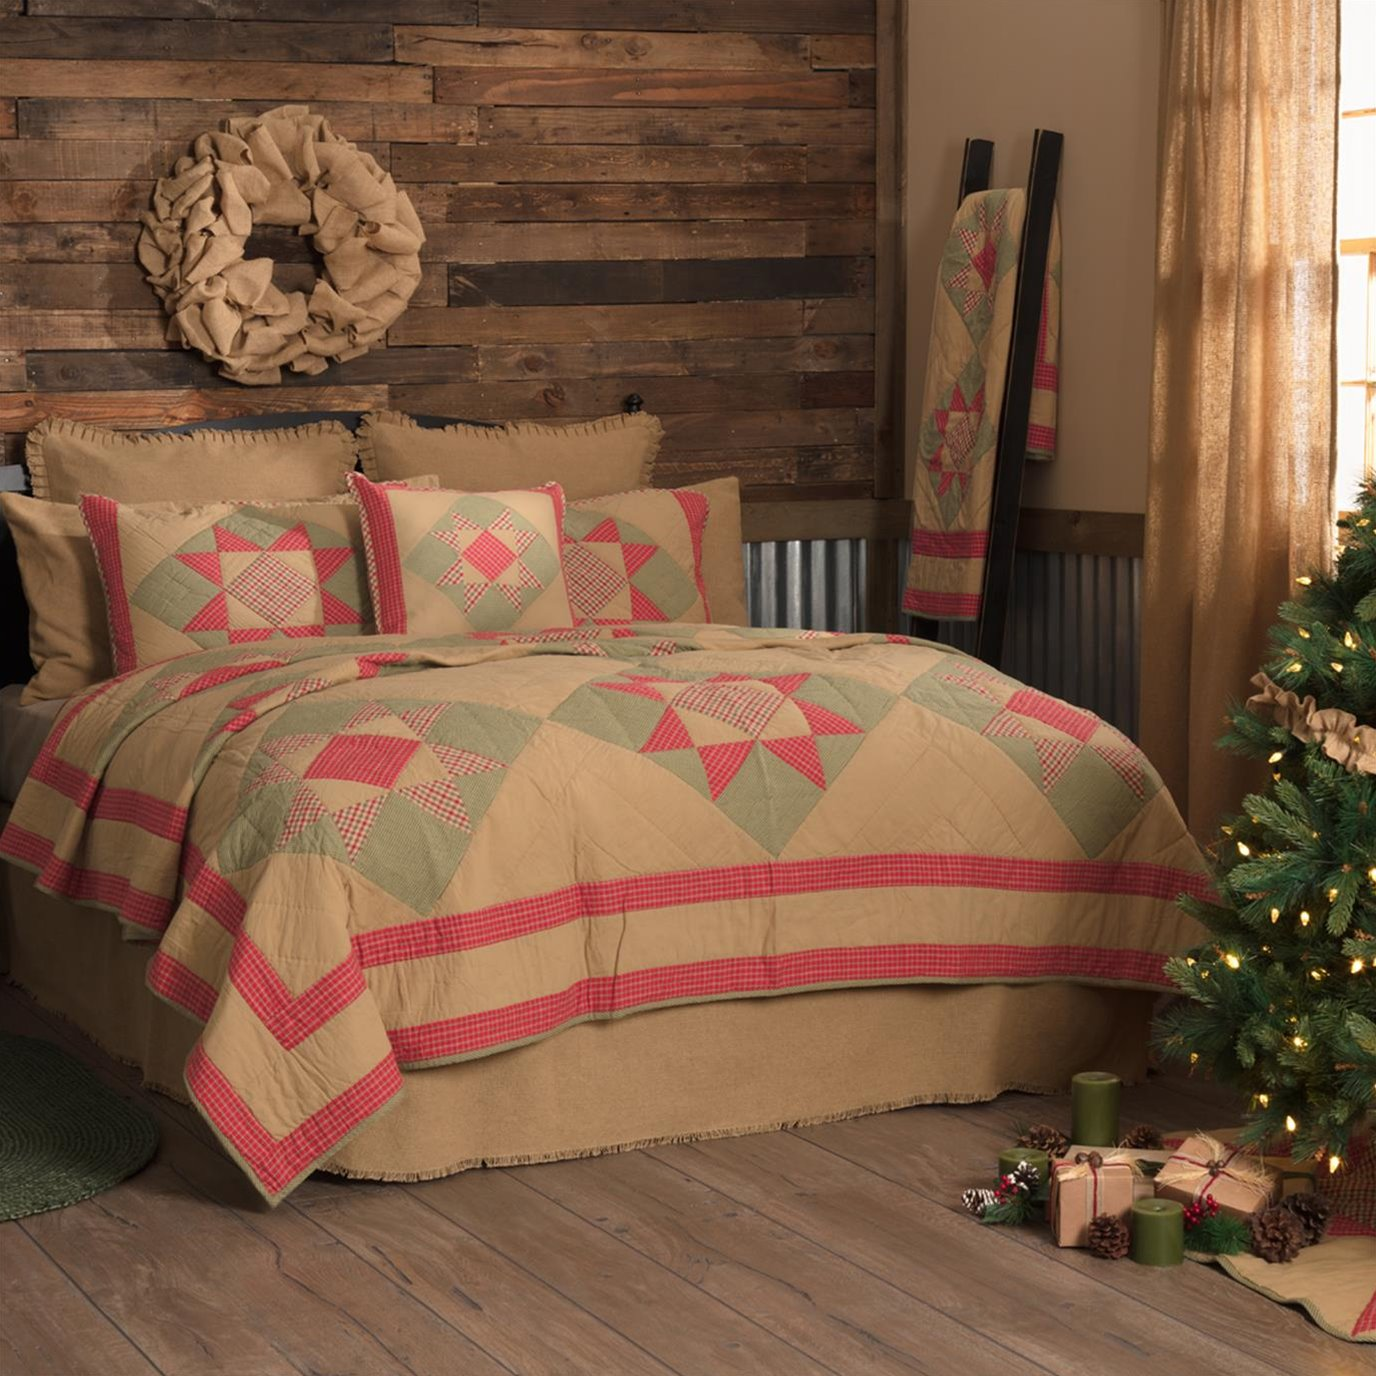 Dolly Star Luxury King Quilt 120Wx105L